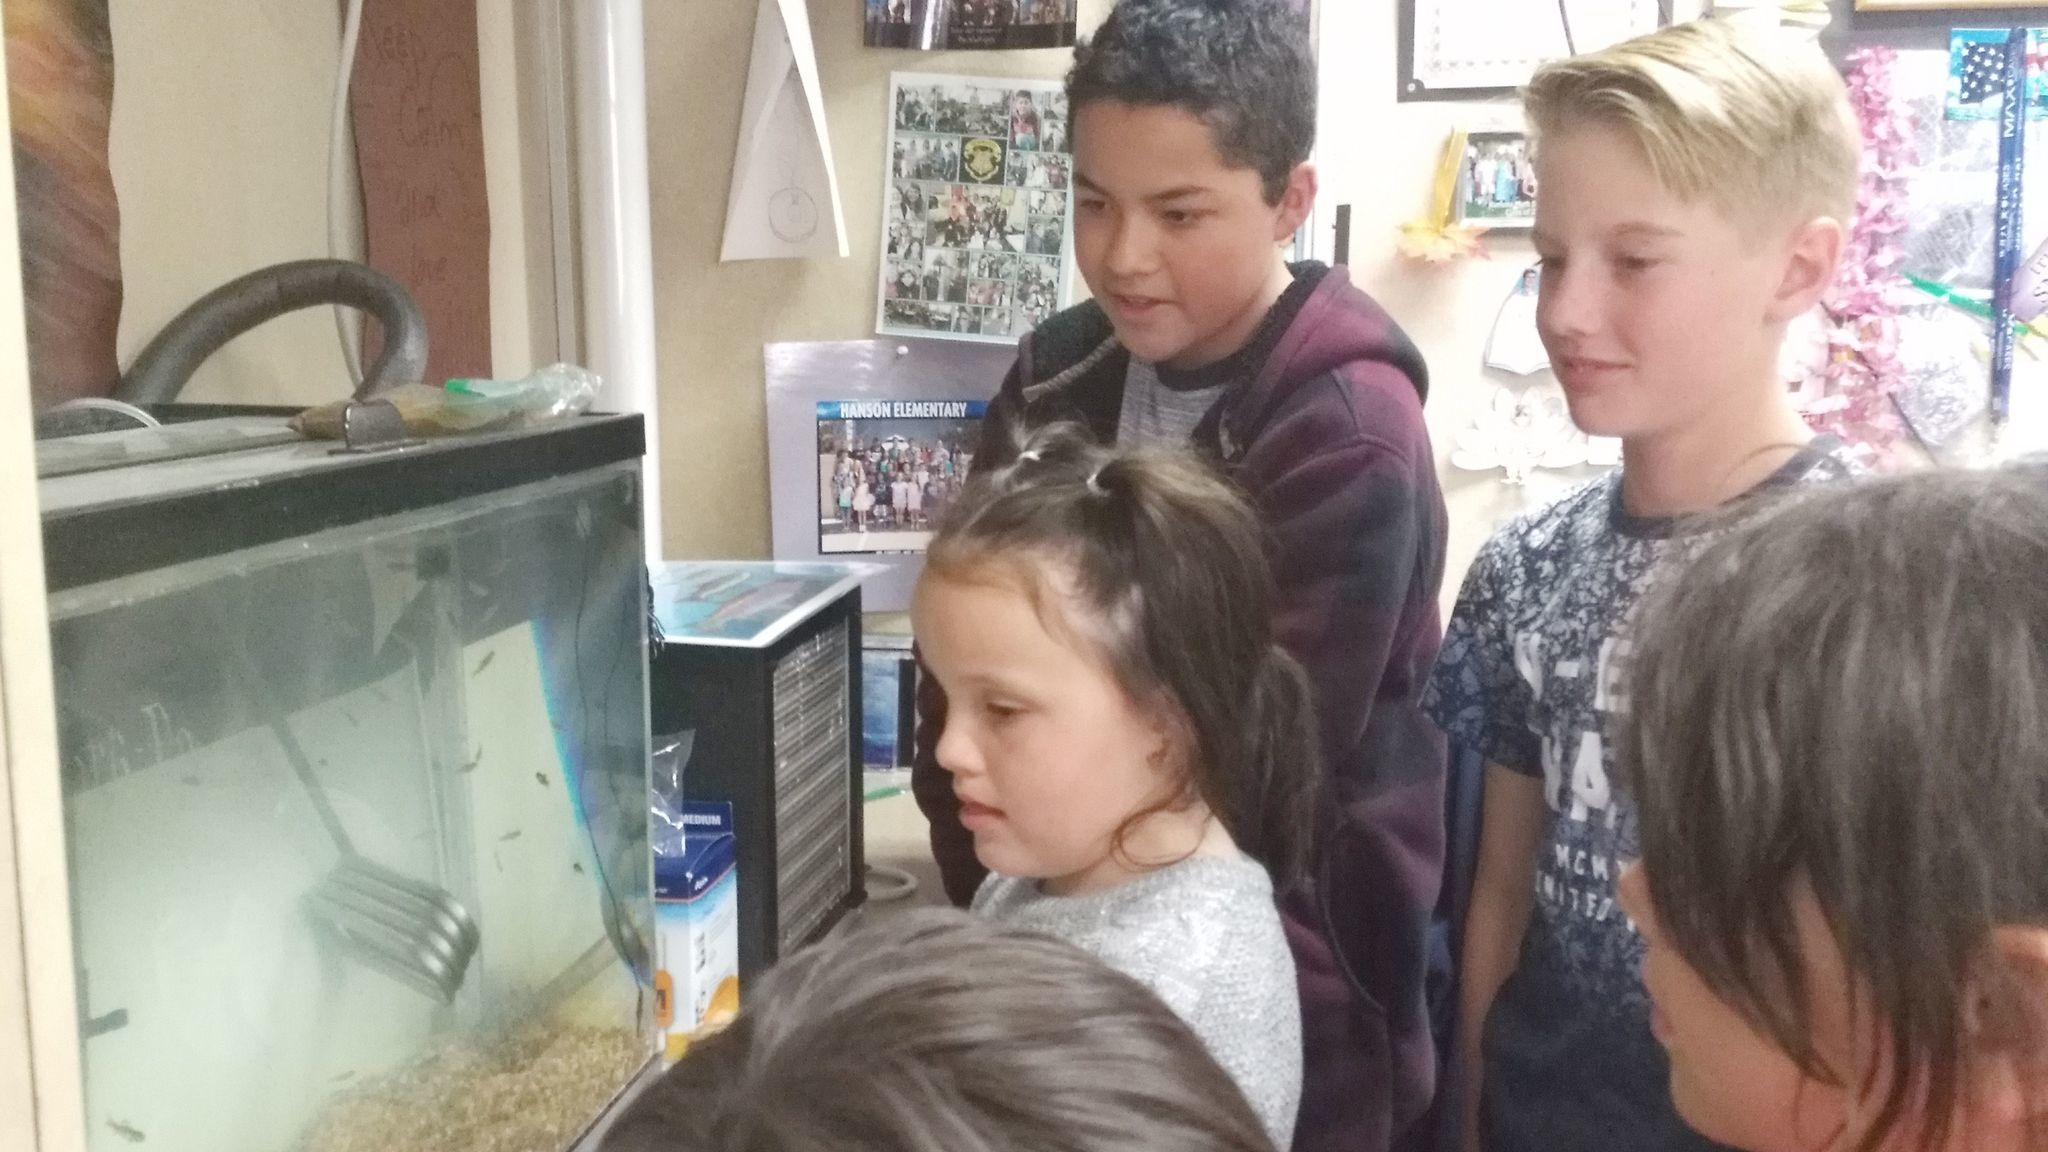 Hanson Elementary School first-graders get a close-up look at trout being raised in Joyce Schildhouse's fifth/sixth-grade classroom. Matias Valkama and Alexis Andrade observe.